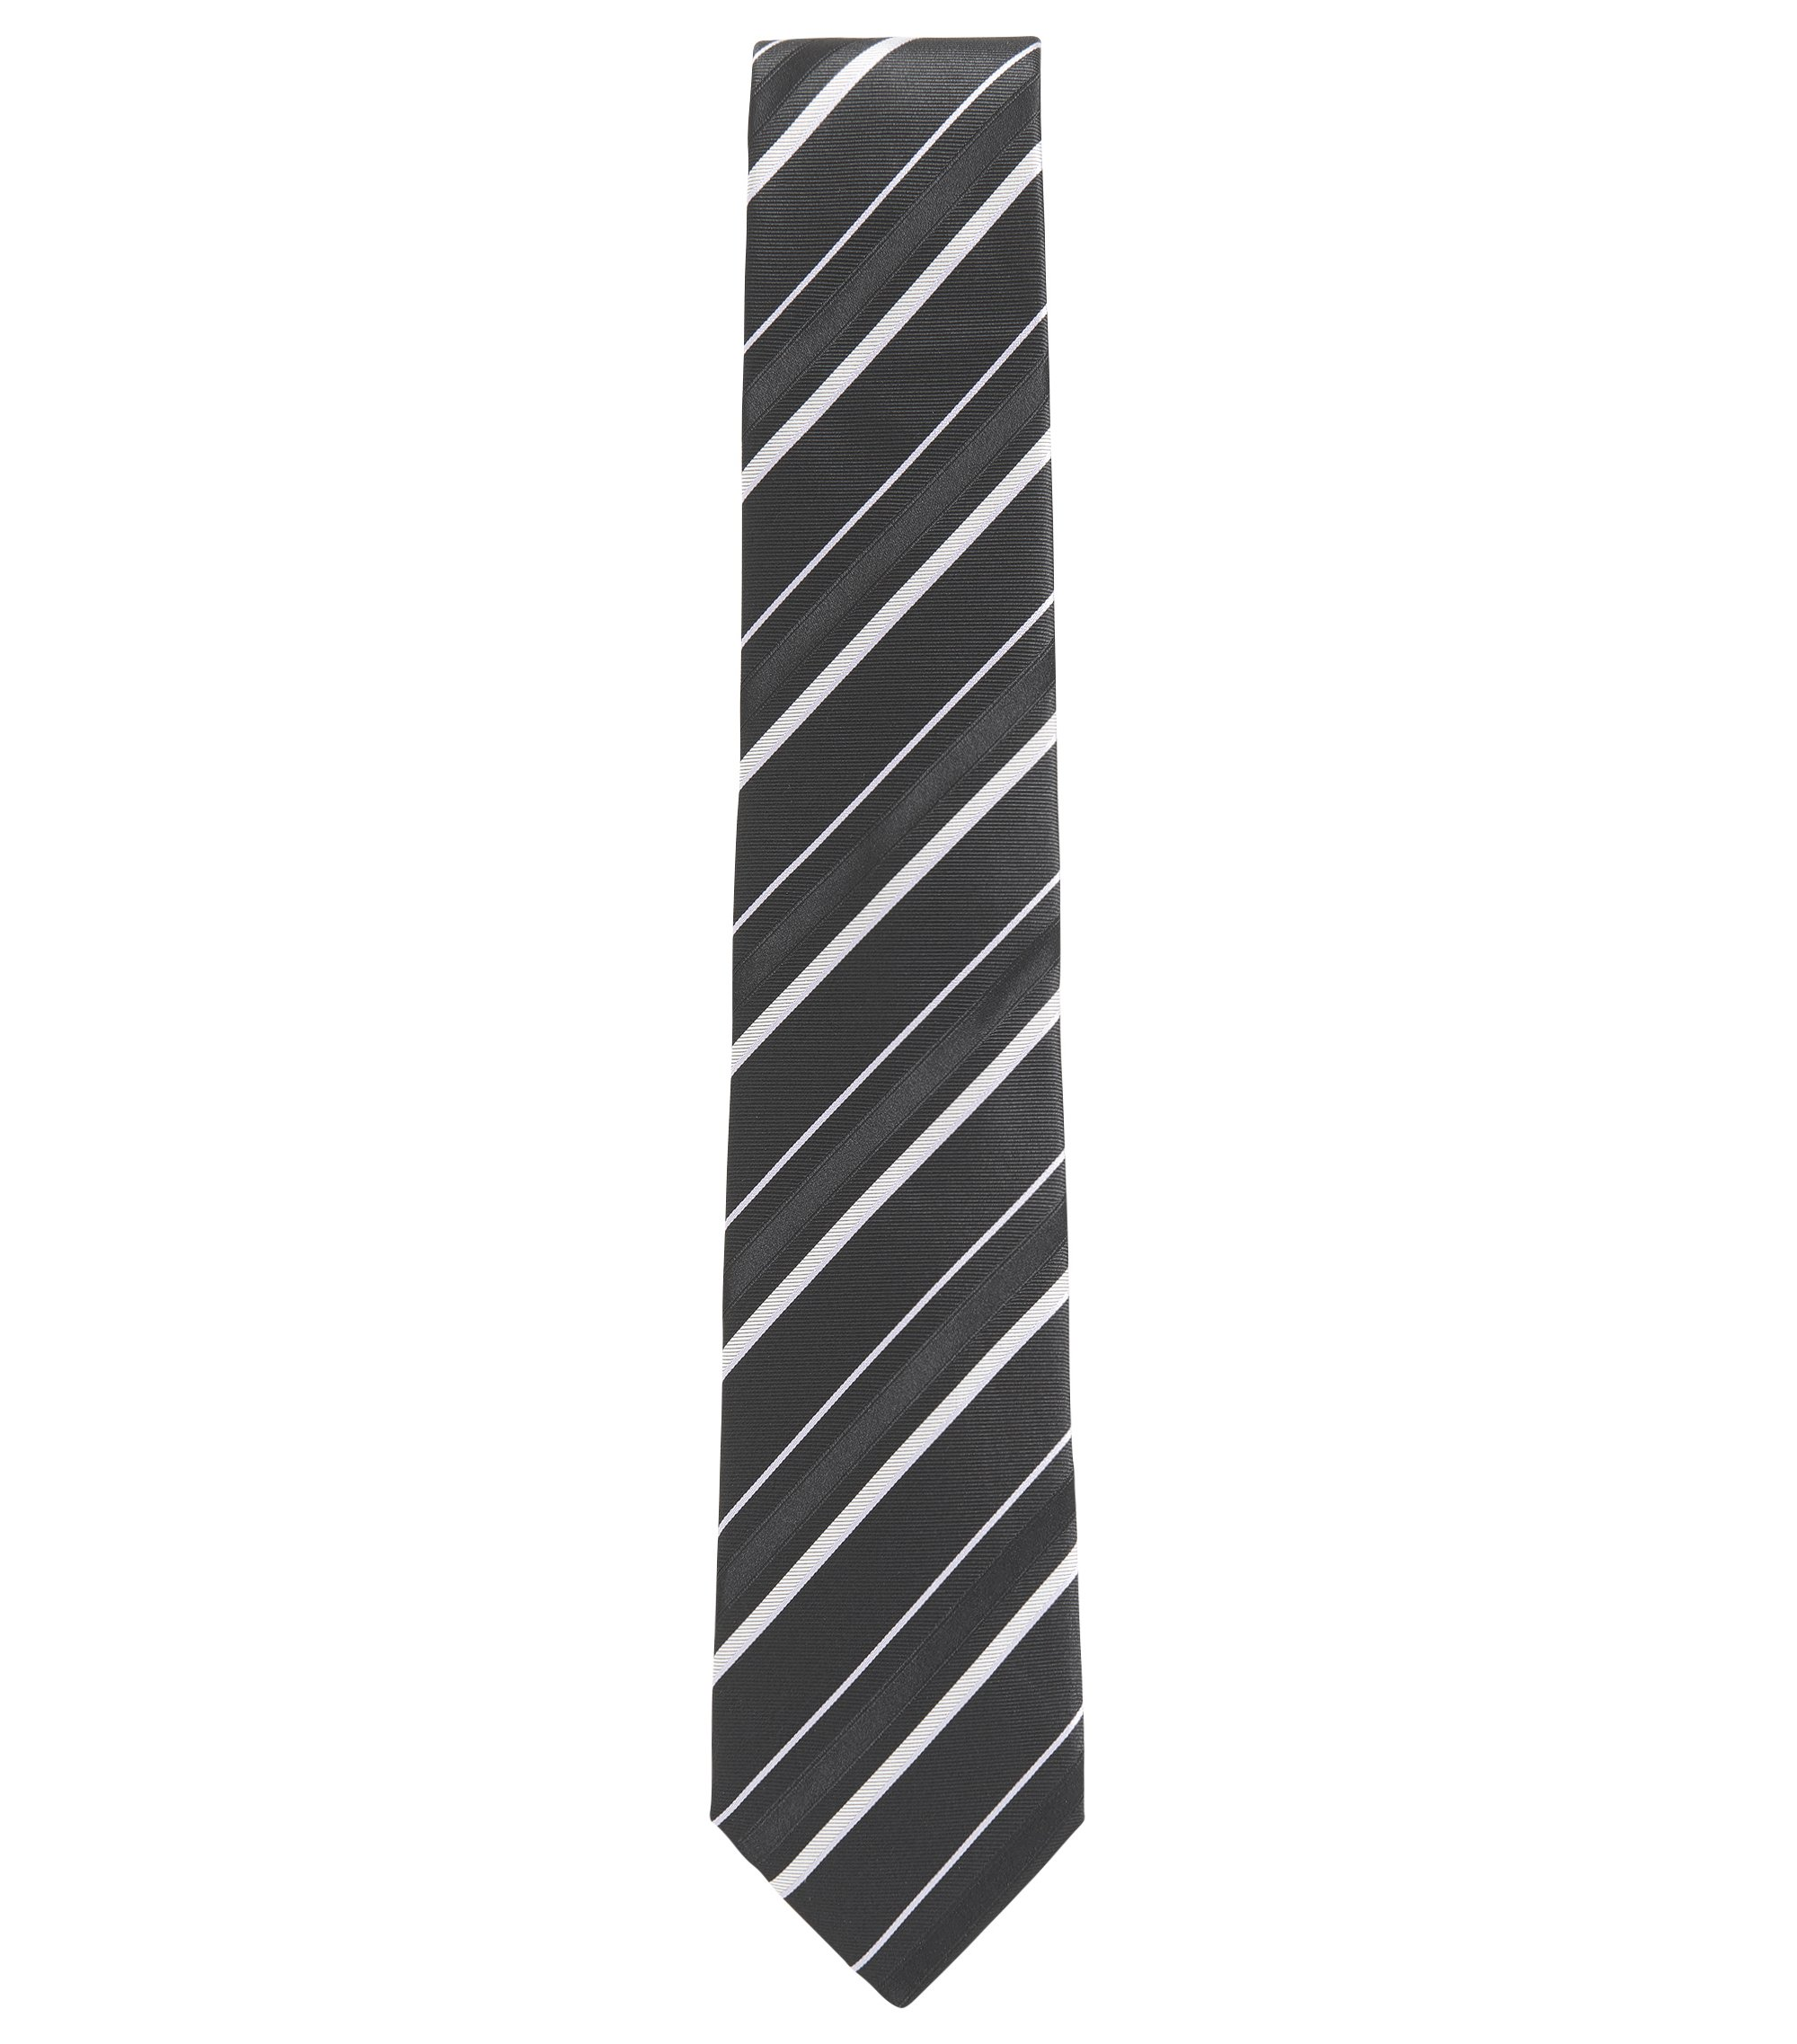 Striped Italian Silk Tie, Black